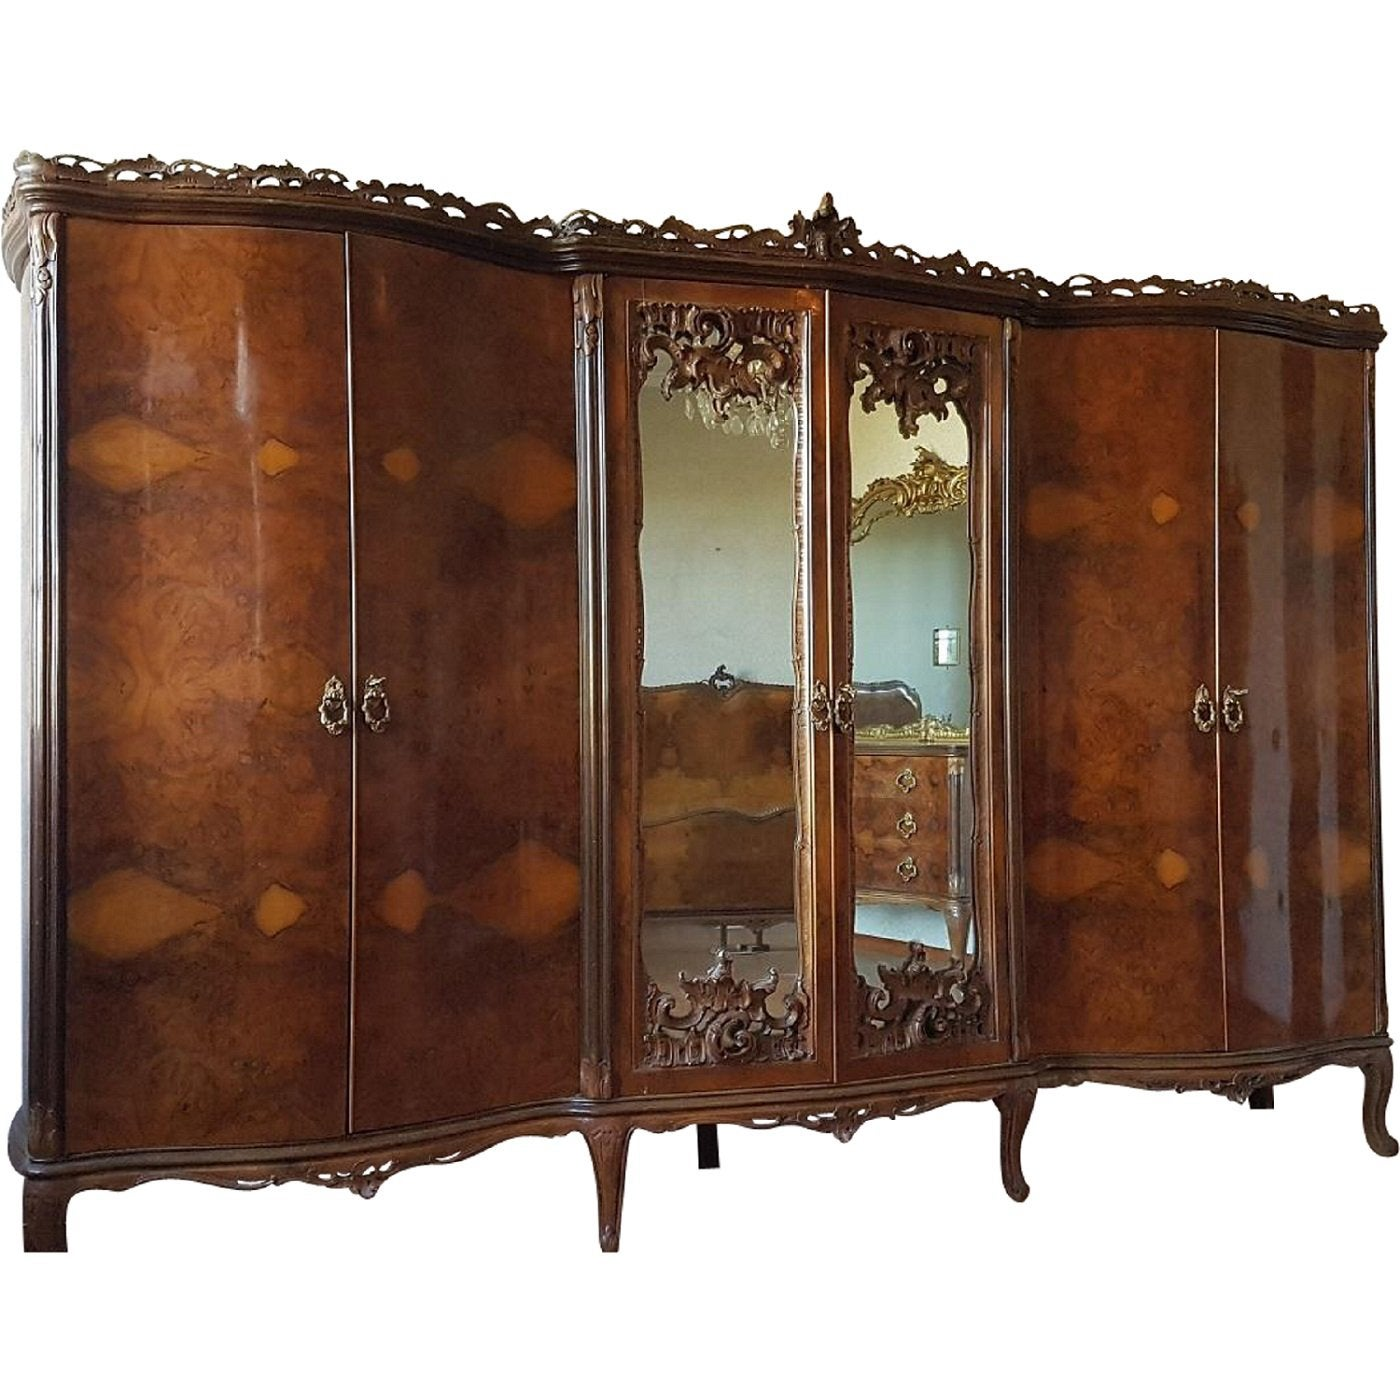 19th Century Italian Chippendale Bombay in Burl Walnut Bedroom Set